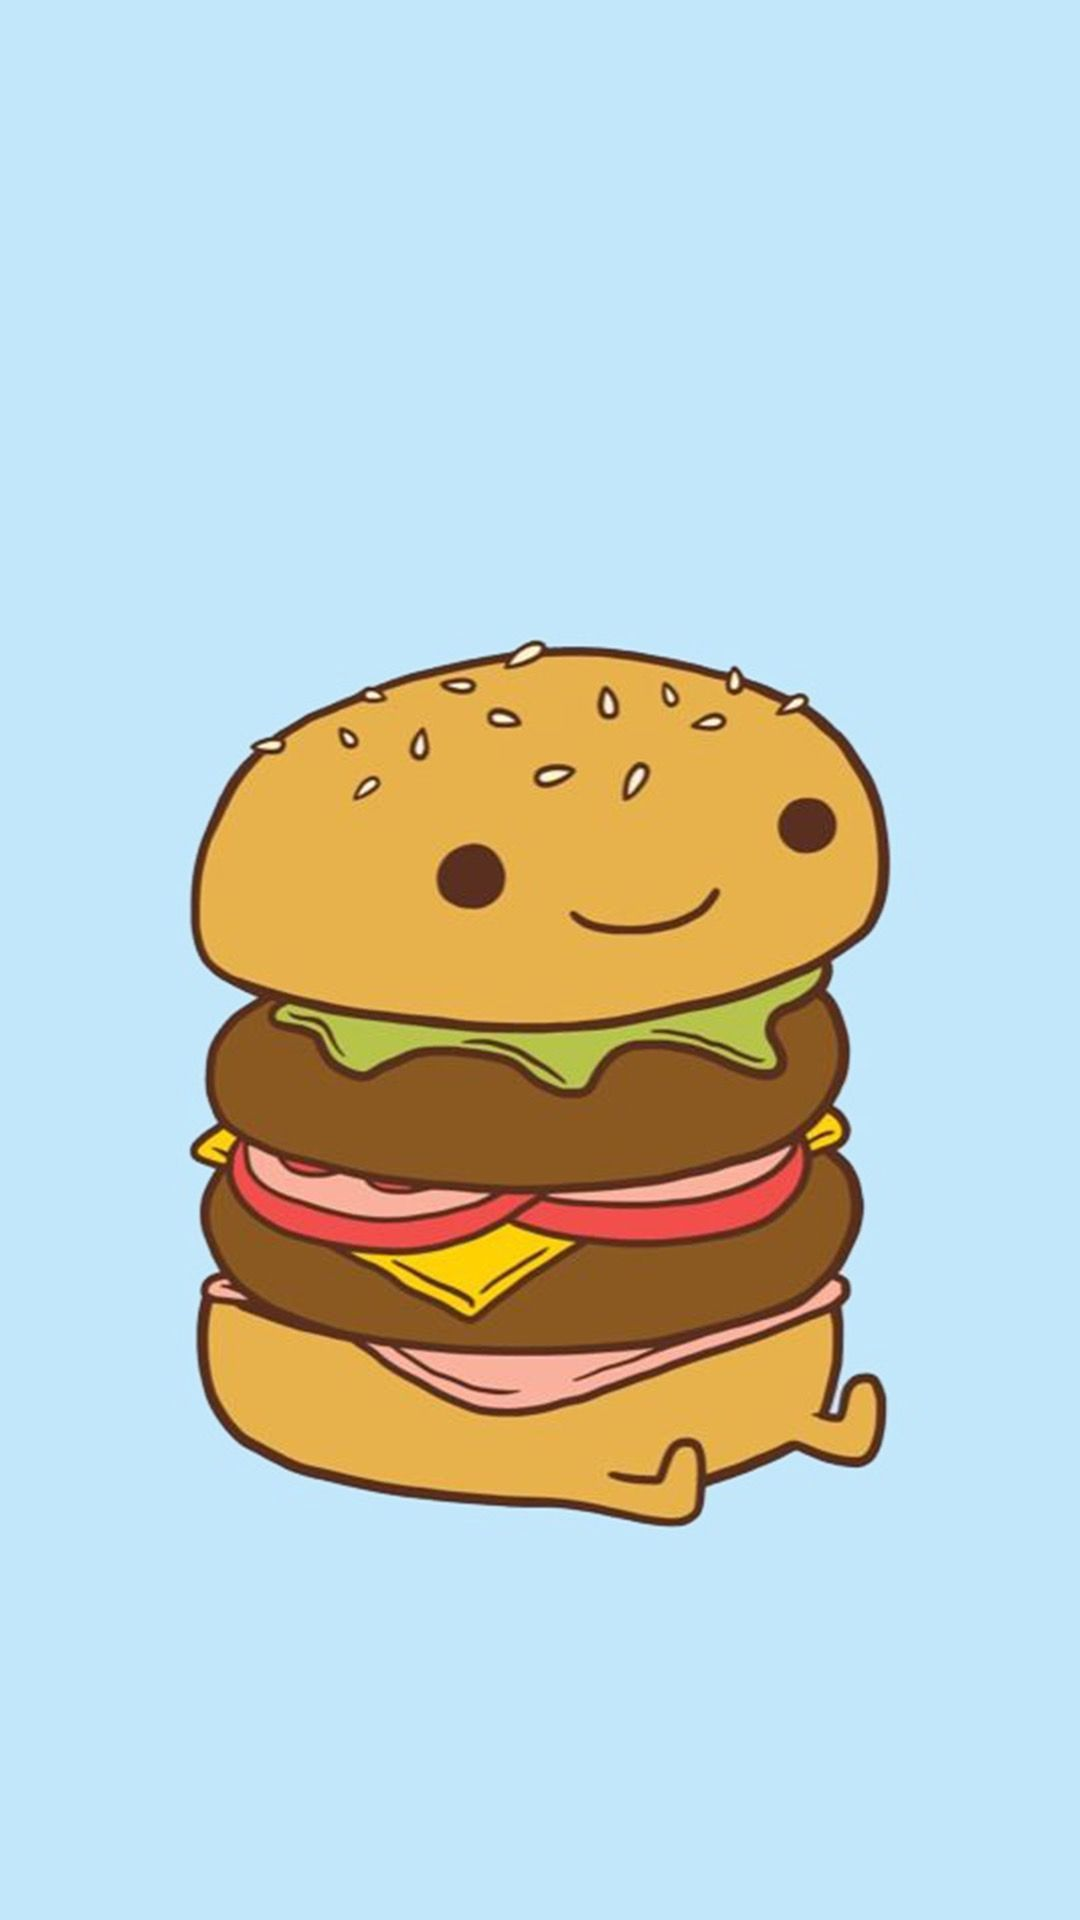 1080x1920 Da burger | My first | Pinterest | Burgers, Kawaii and Wallpaper